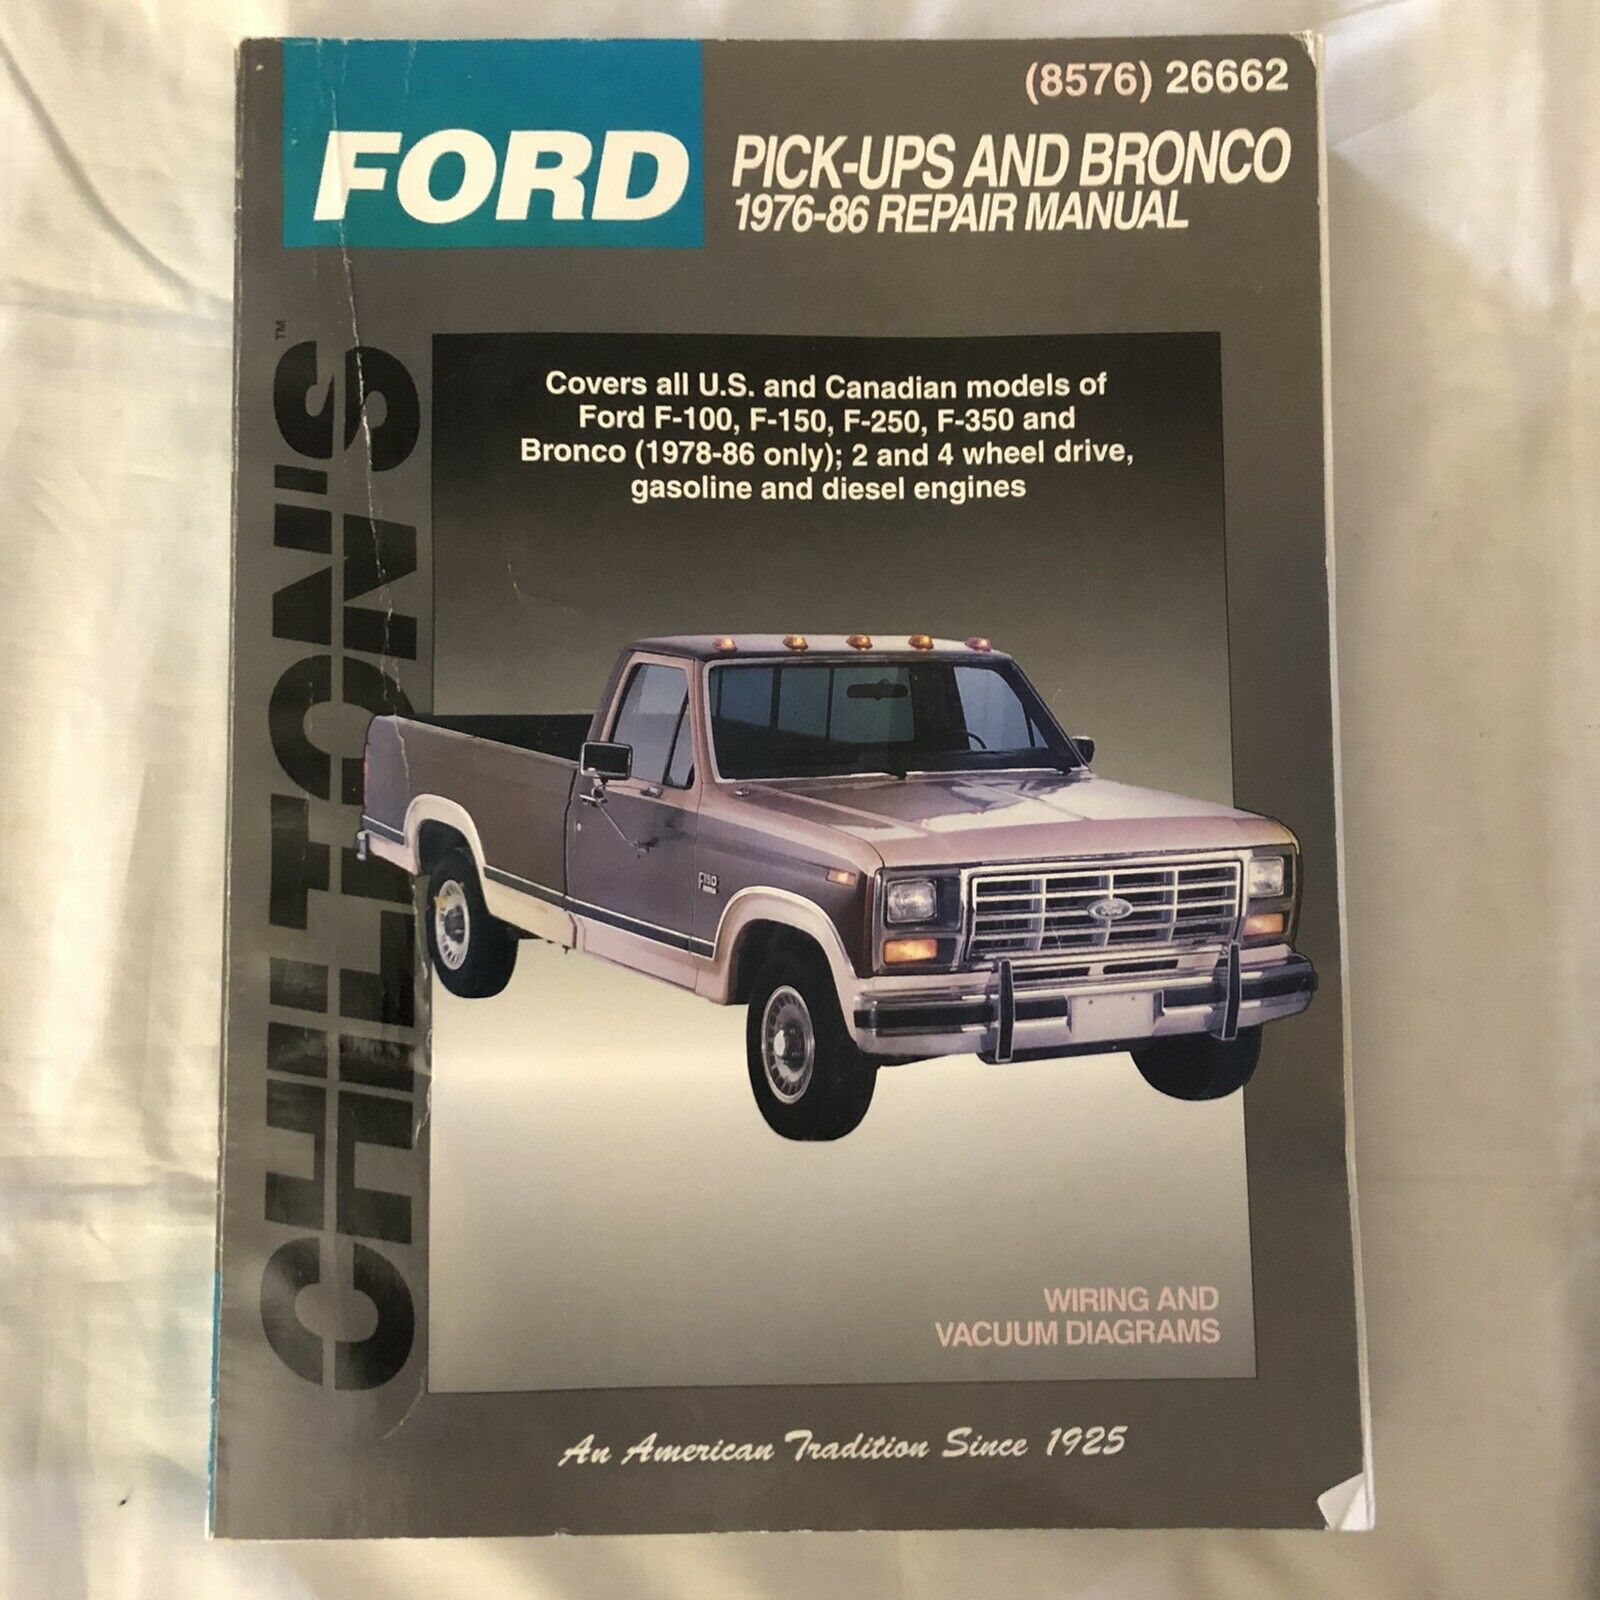 picture of 1986 ford f 150 pick up engine diagram repair manual xlt chilton 26662 for sale online ebay  repair manual xlt chilton 26662 for